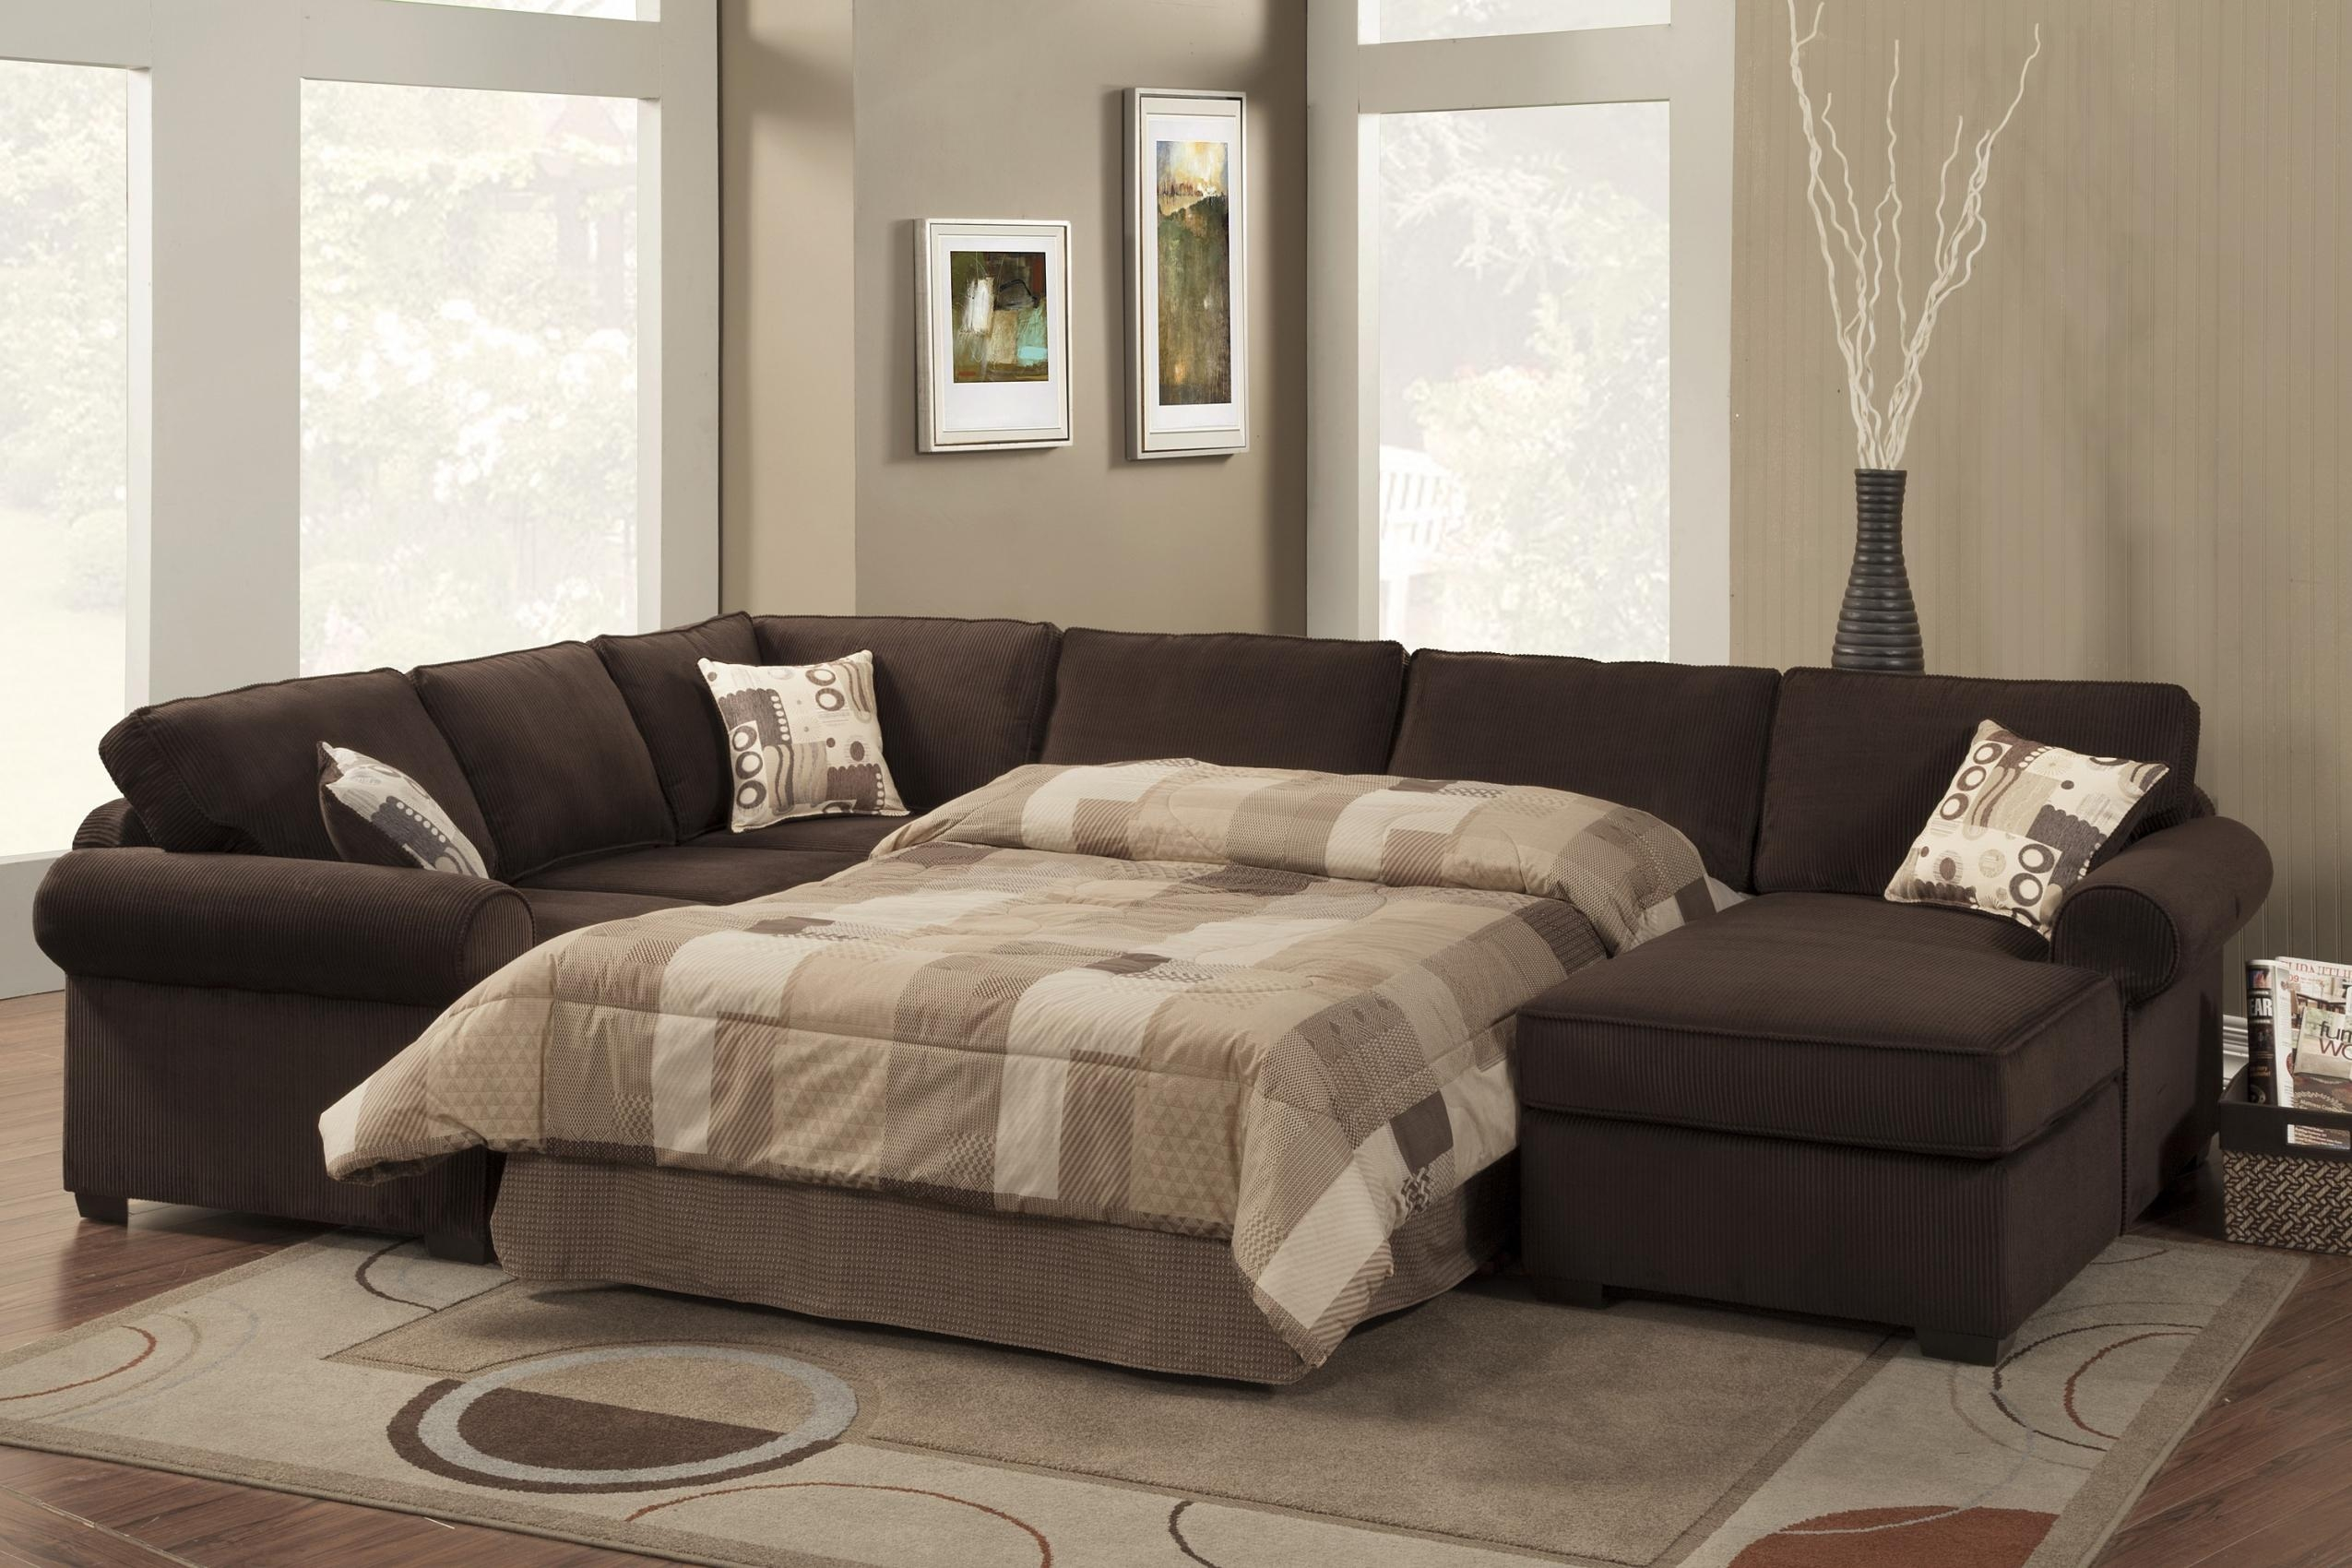 Bedroom: Amusing Sectional Sofa With Comfortable Lazy Boy Sleeper Inside Comfortable Sectional (View 12 of 15)